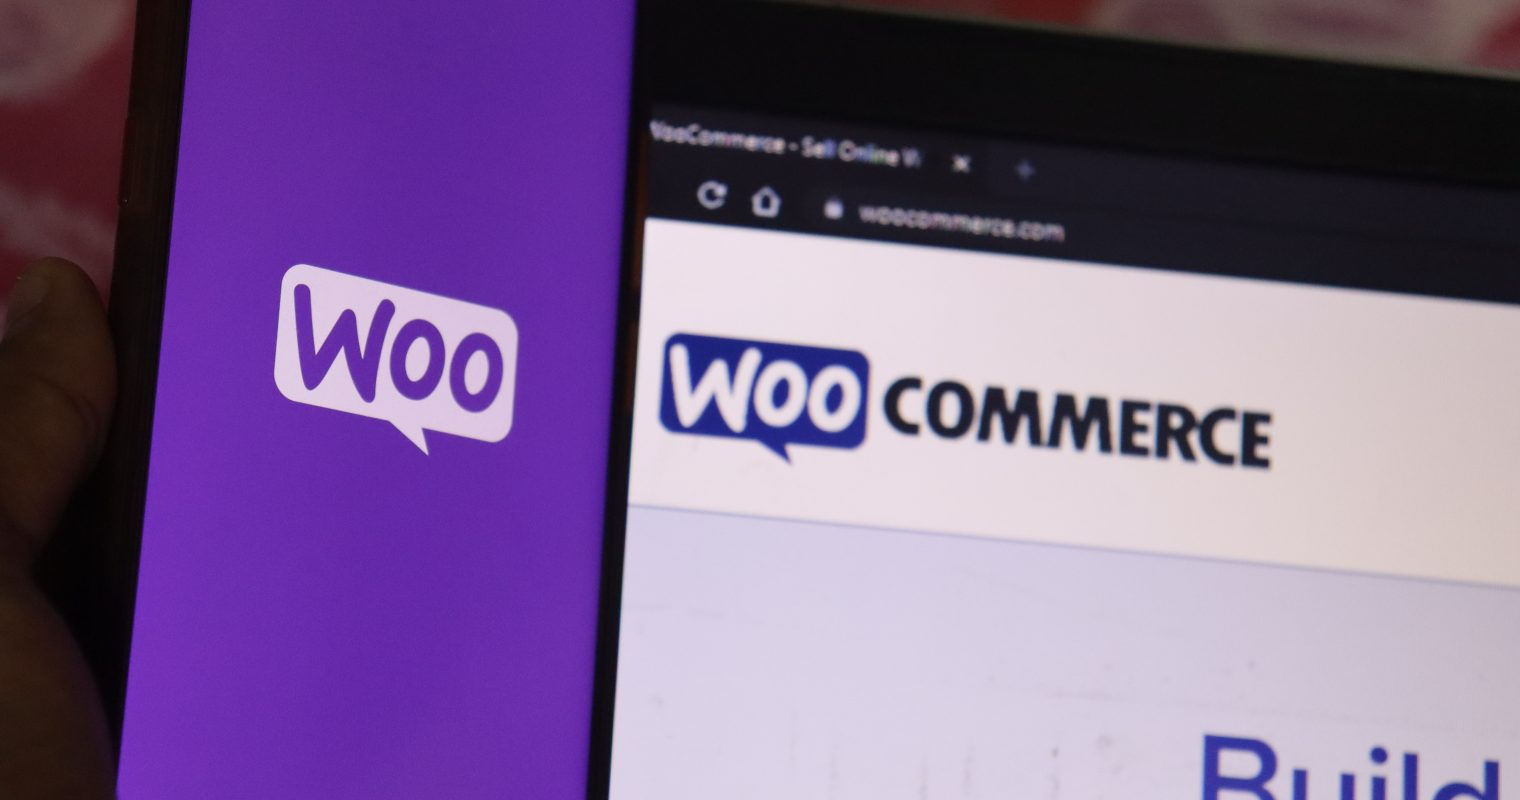 Google Integrates With WooCommerce For Easy Product Uploads